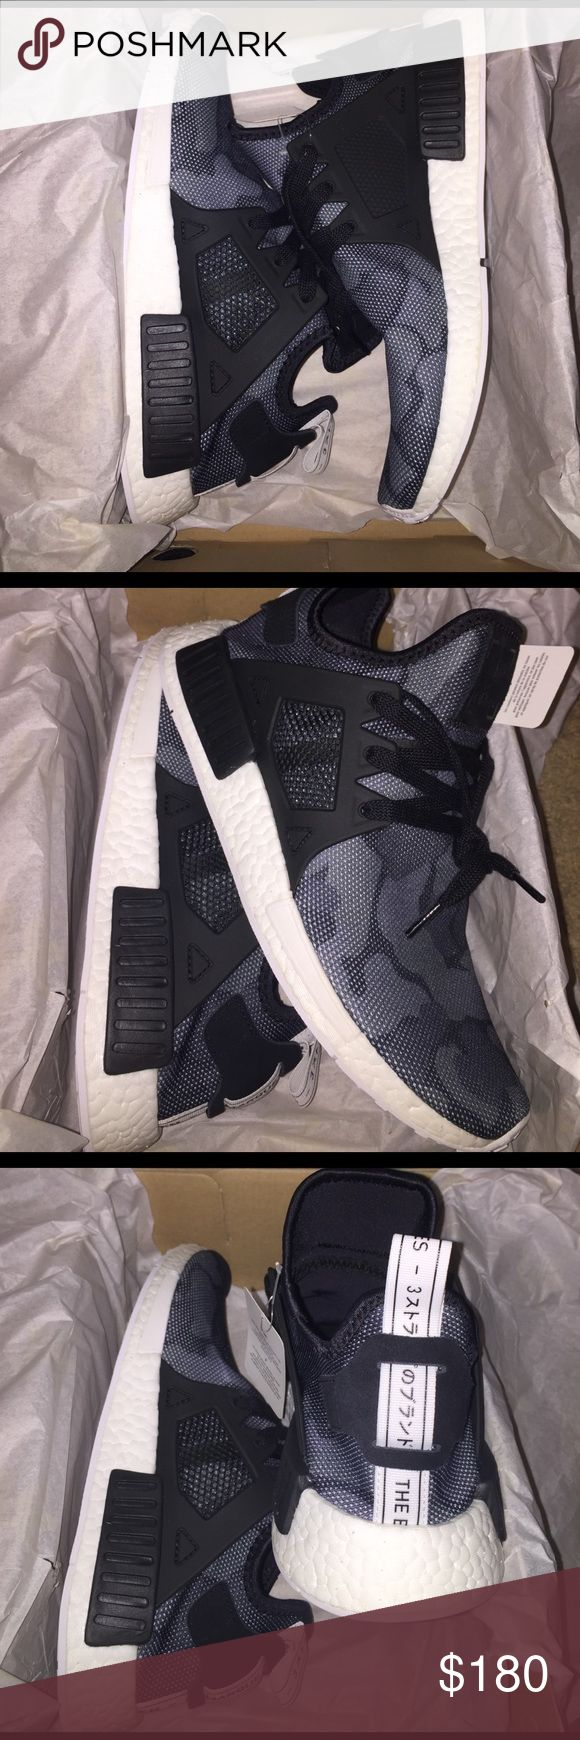 Brand new NMD XR1 Mens size 9.5 Brand new camo NMD XR1 Mens size 9.5. Black and white Adidas Shoes Sneakers